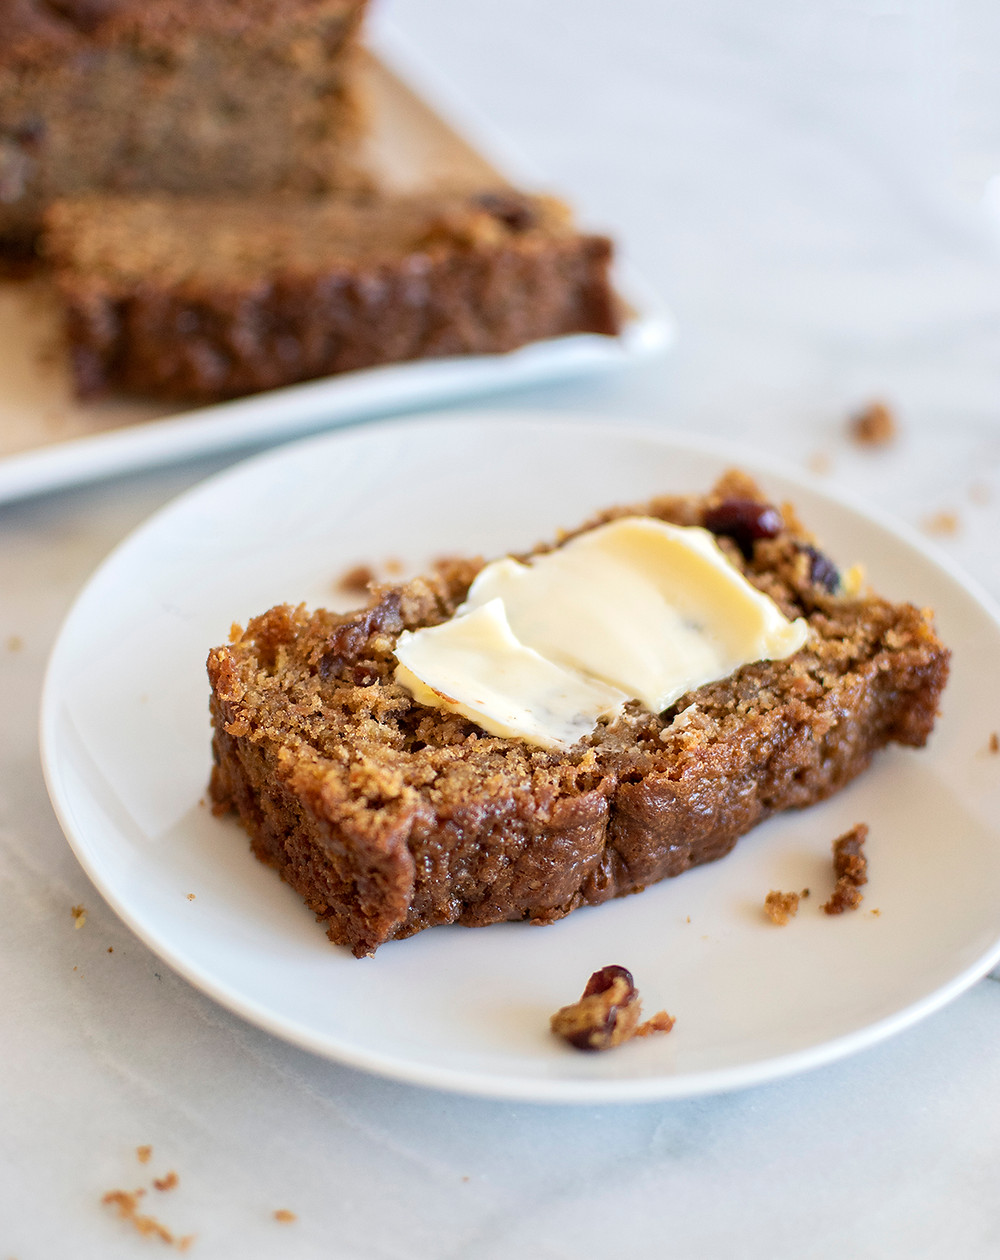 Spiced Cranberry Carrot Bread served in a plate